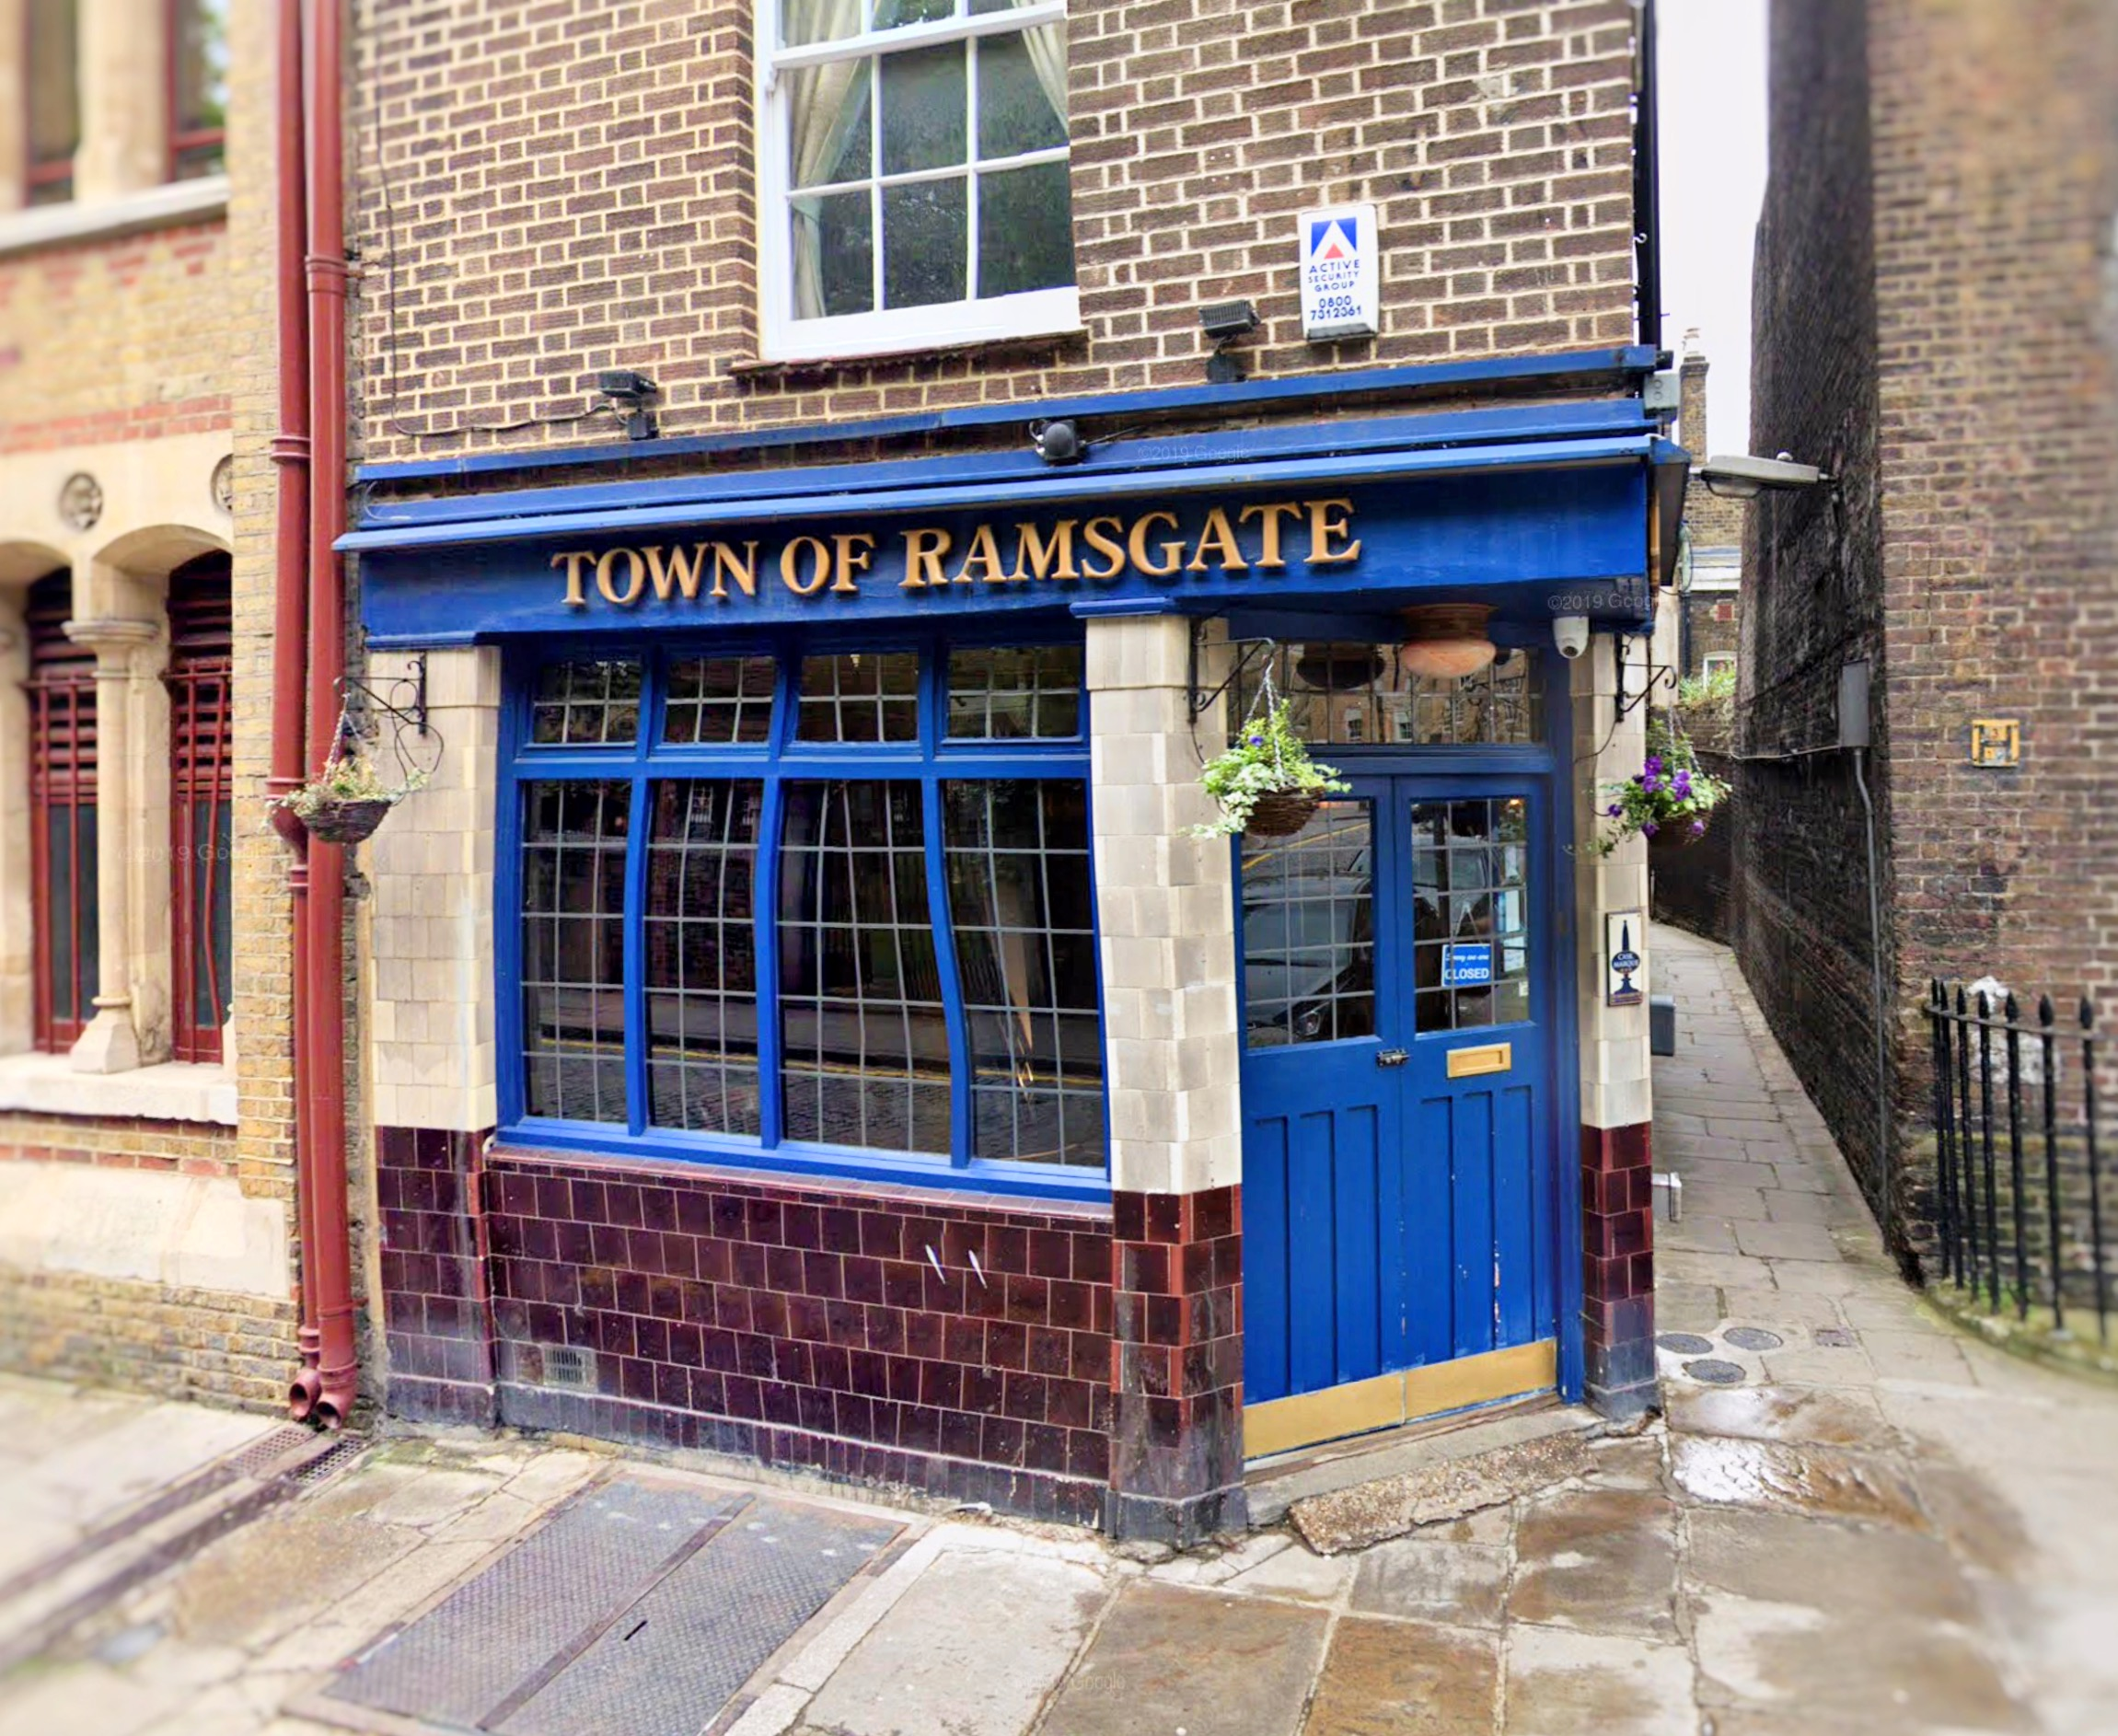 London pub: The Town of Ramsgate